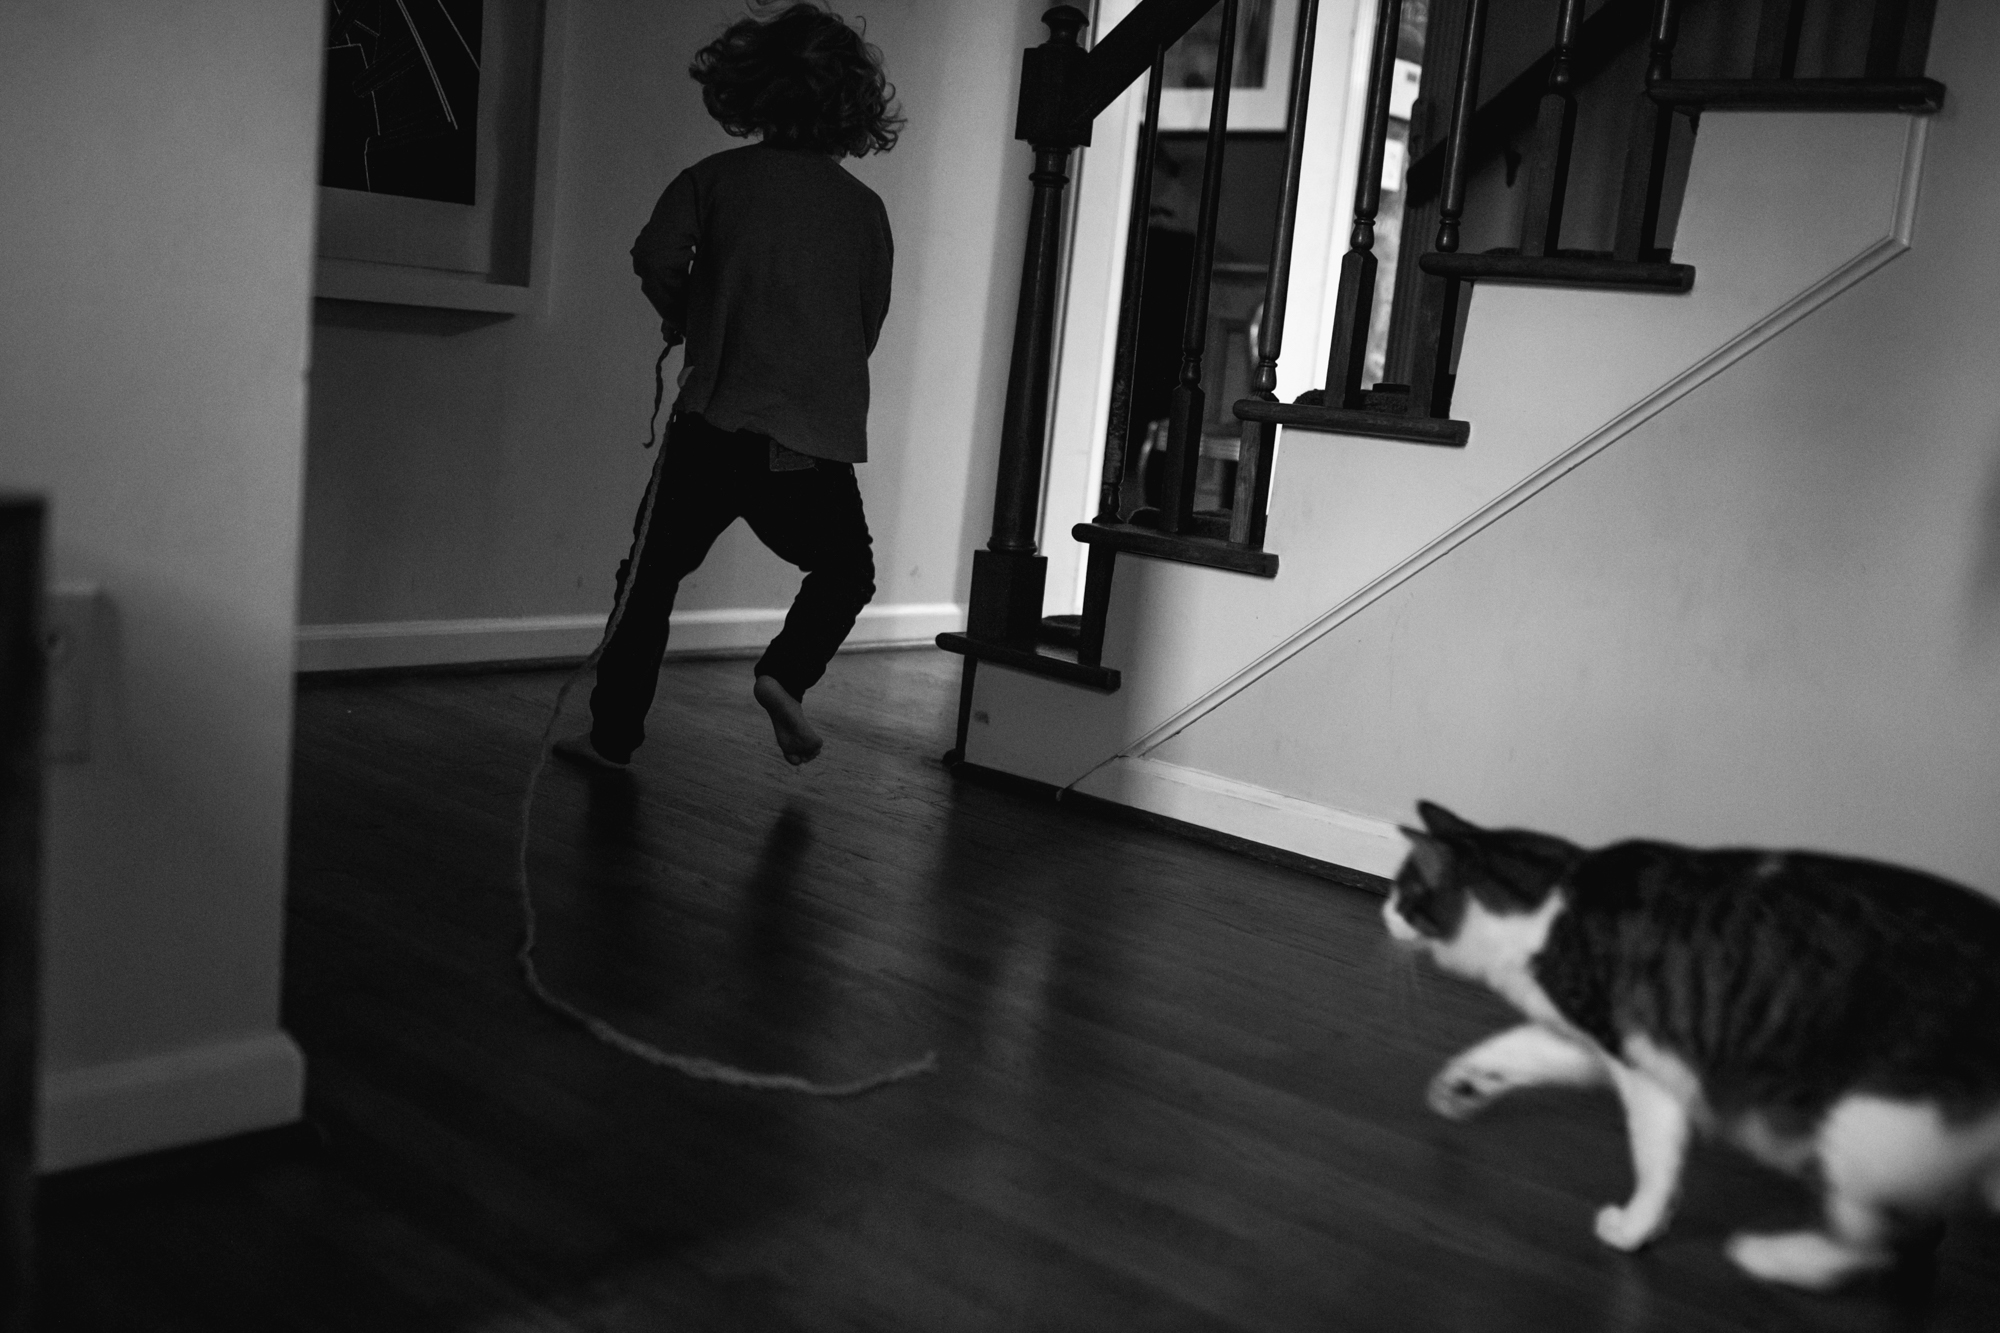 A cat chases a boy dragging a string around a corner